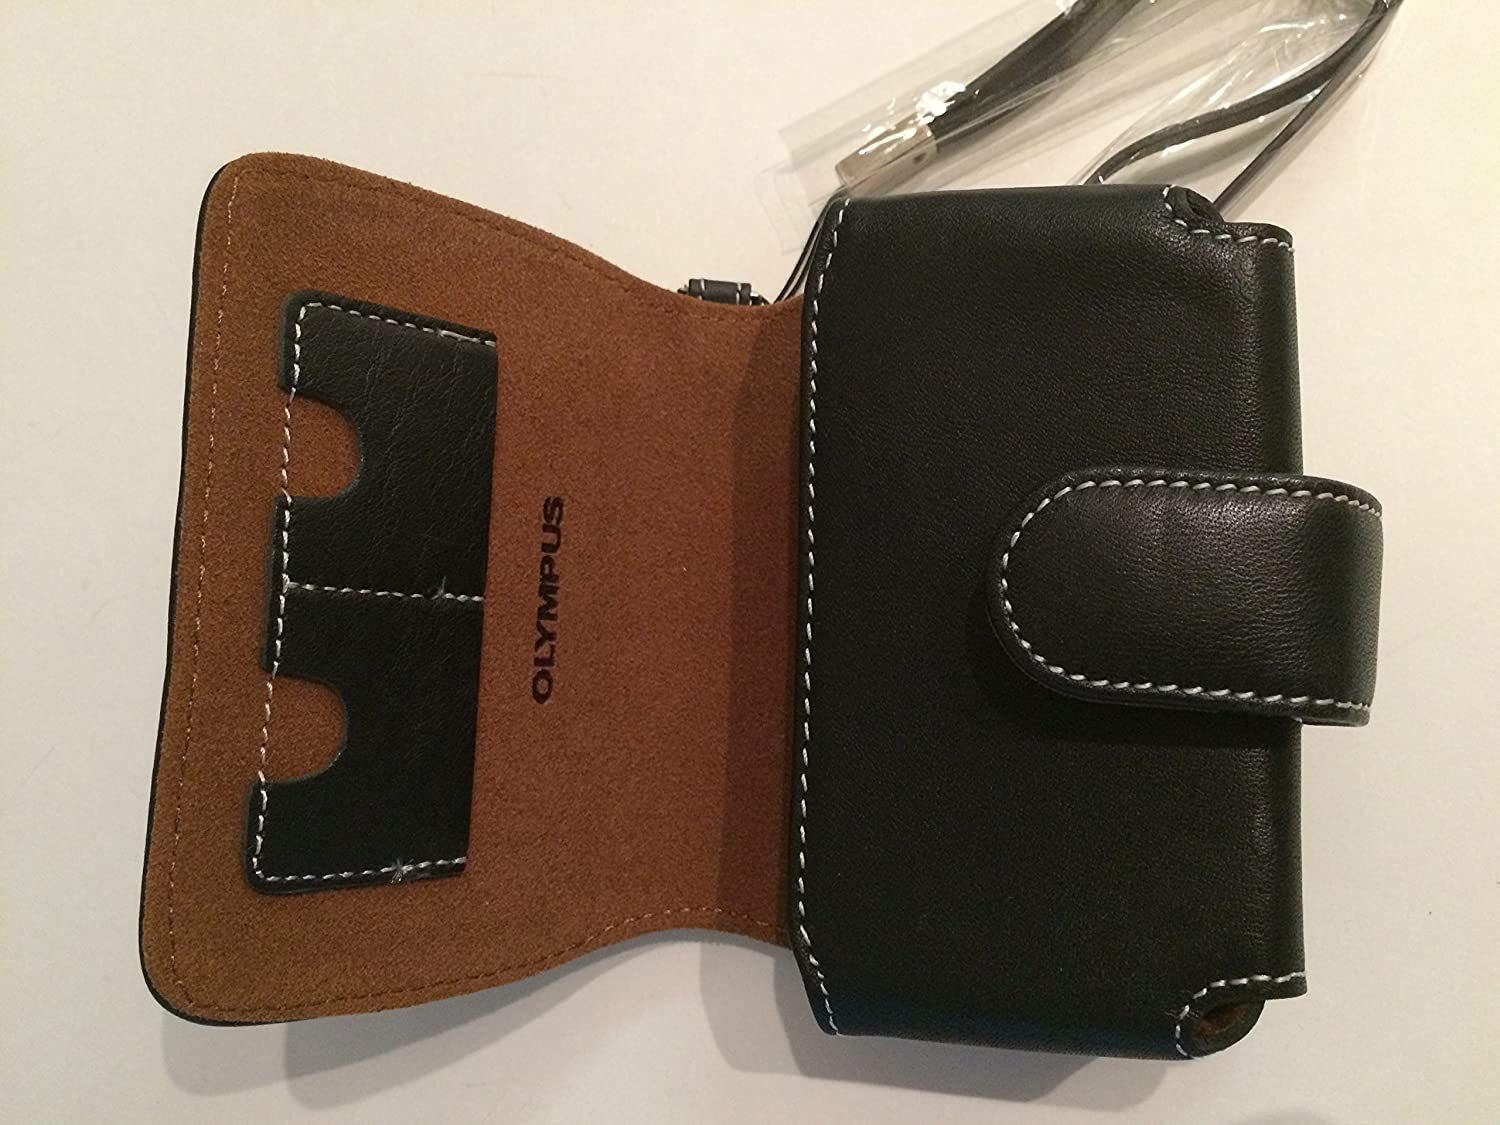 Olympus Slim Leather Case for Compact Cameras (Black)